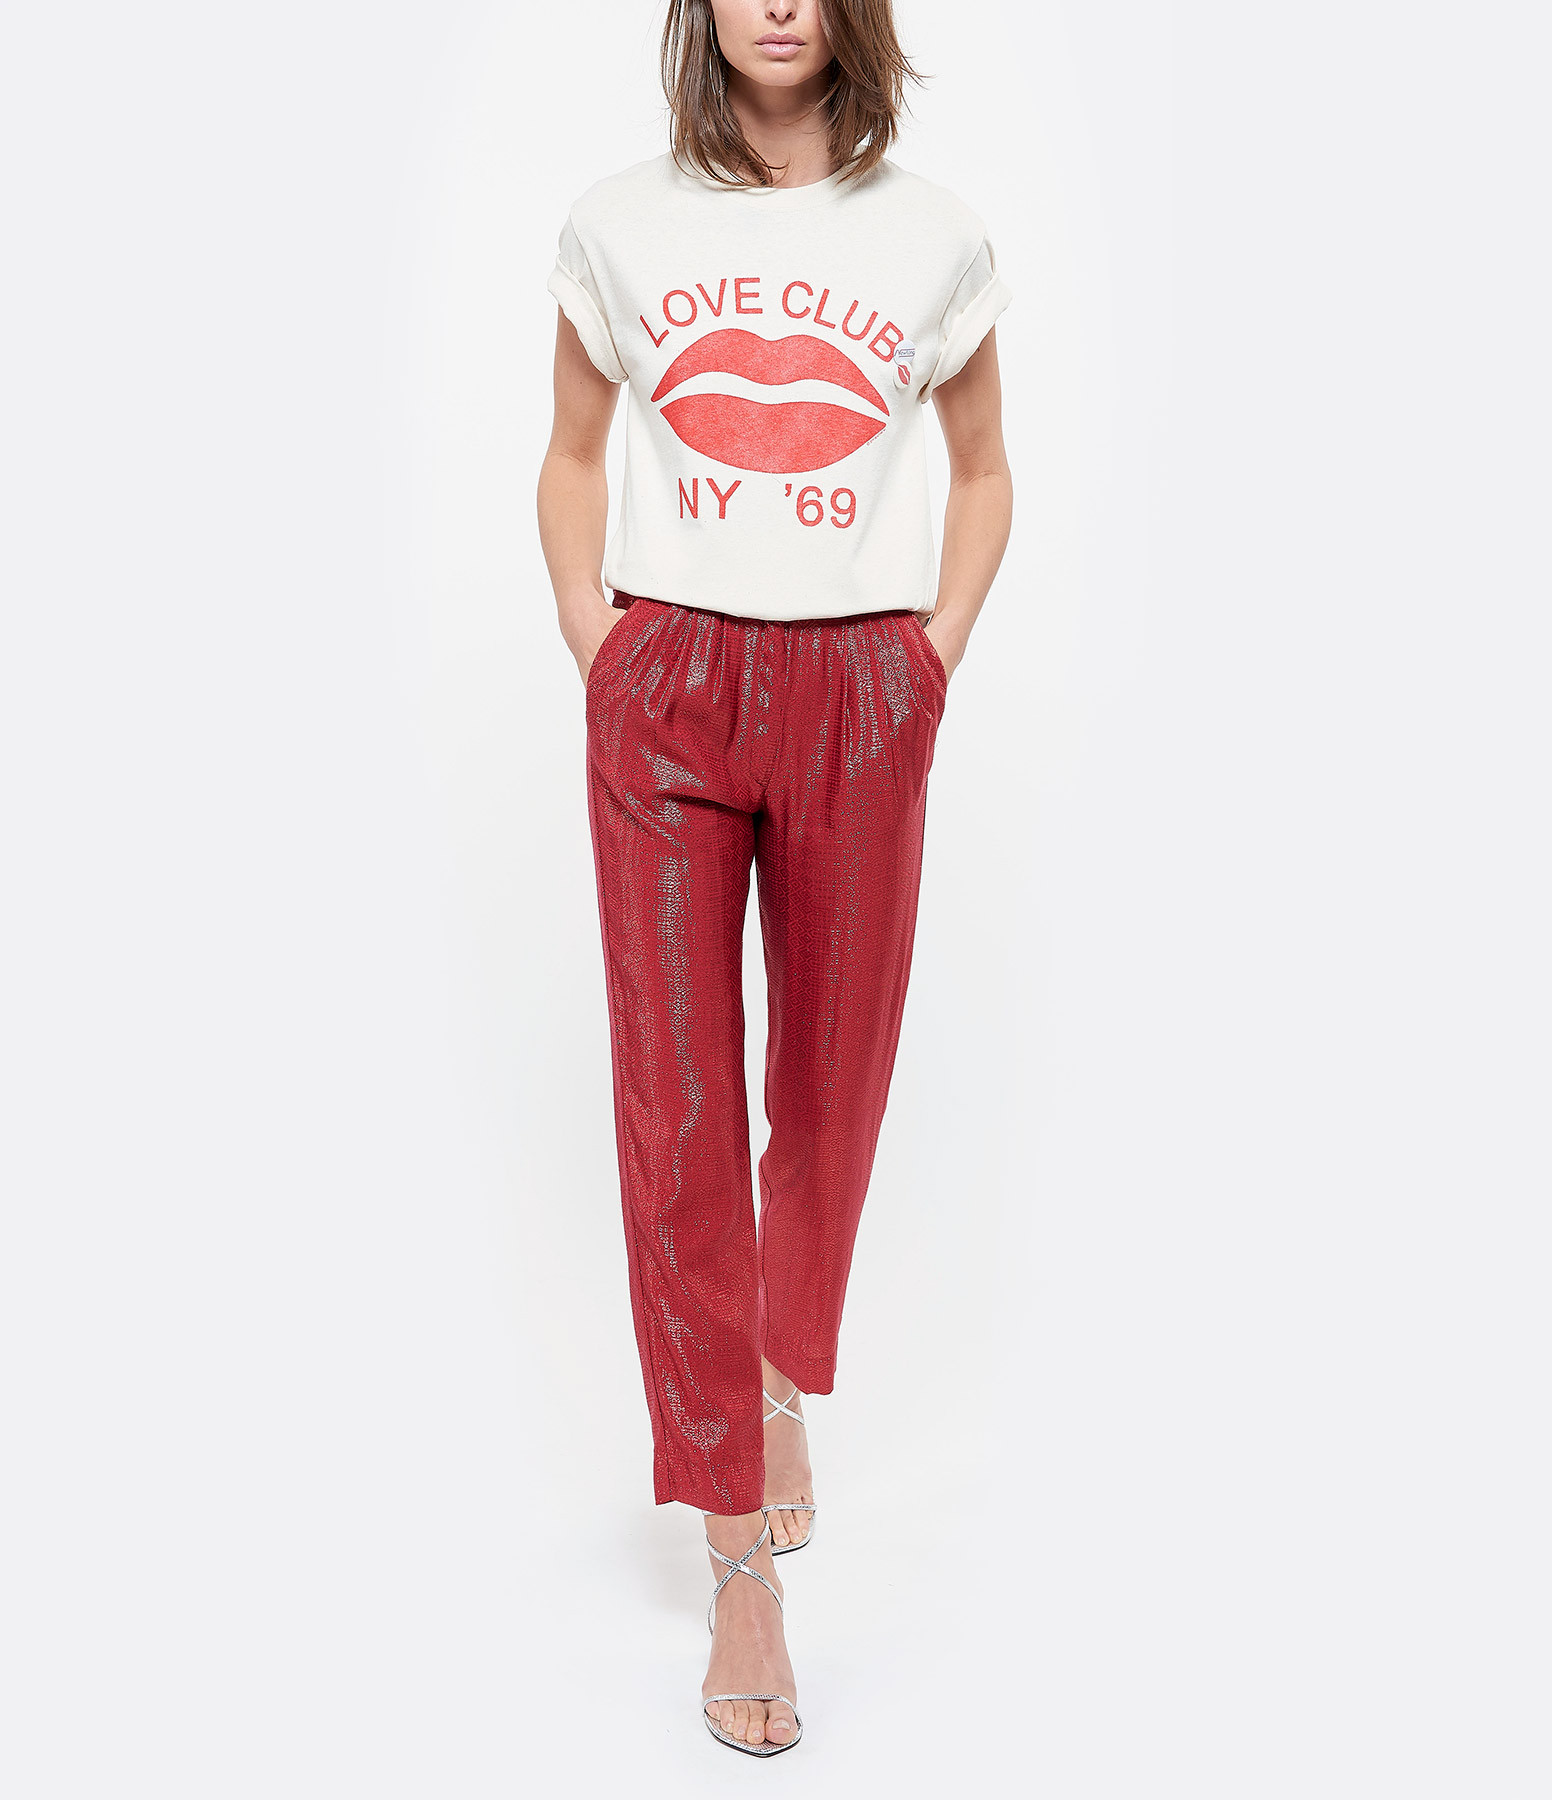 NEWTONE - Tee-shirt Love Club Coton Naturel